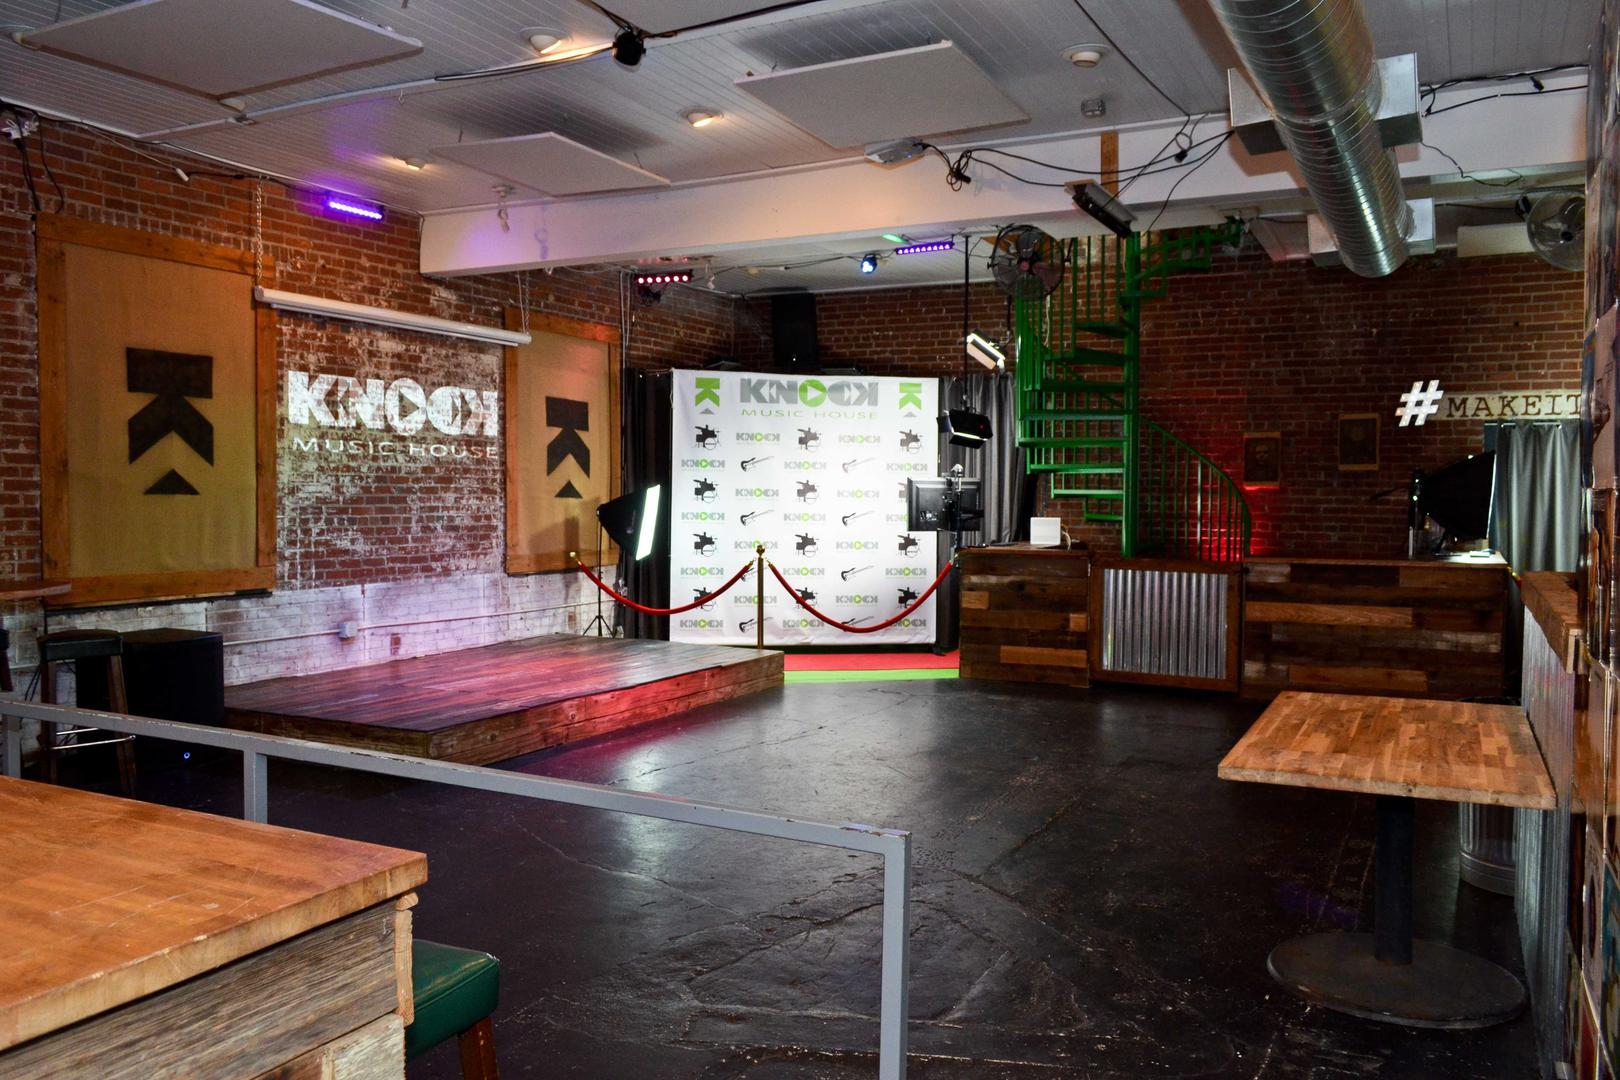 space at Knock Music House